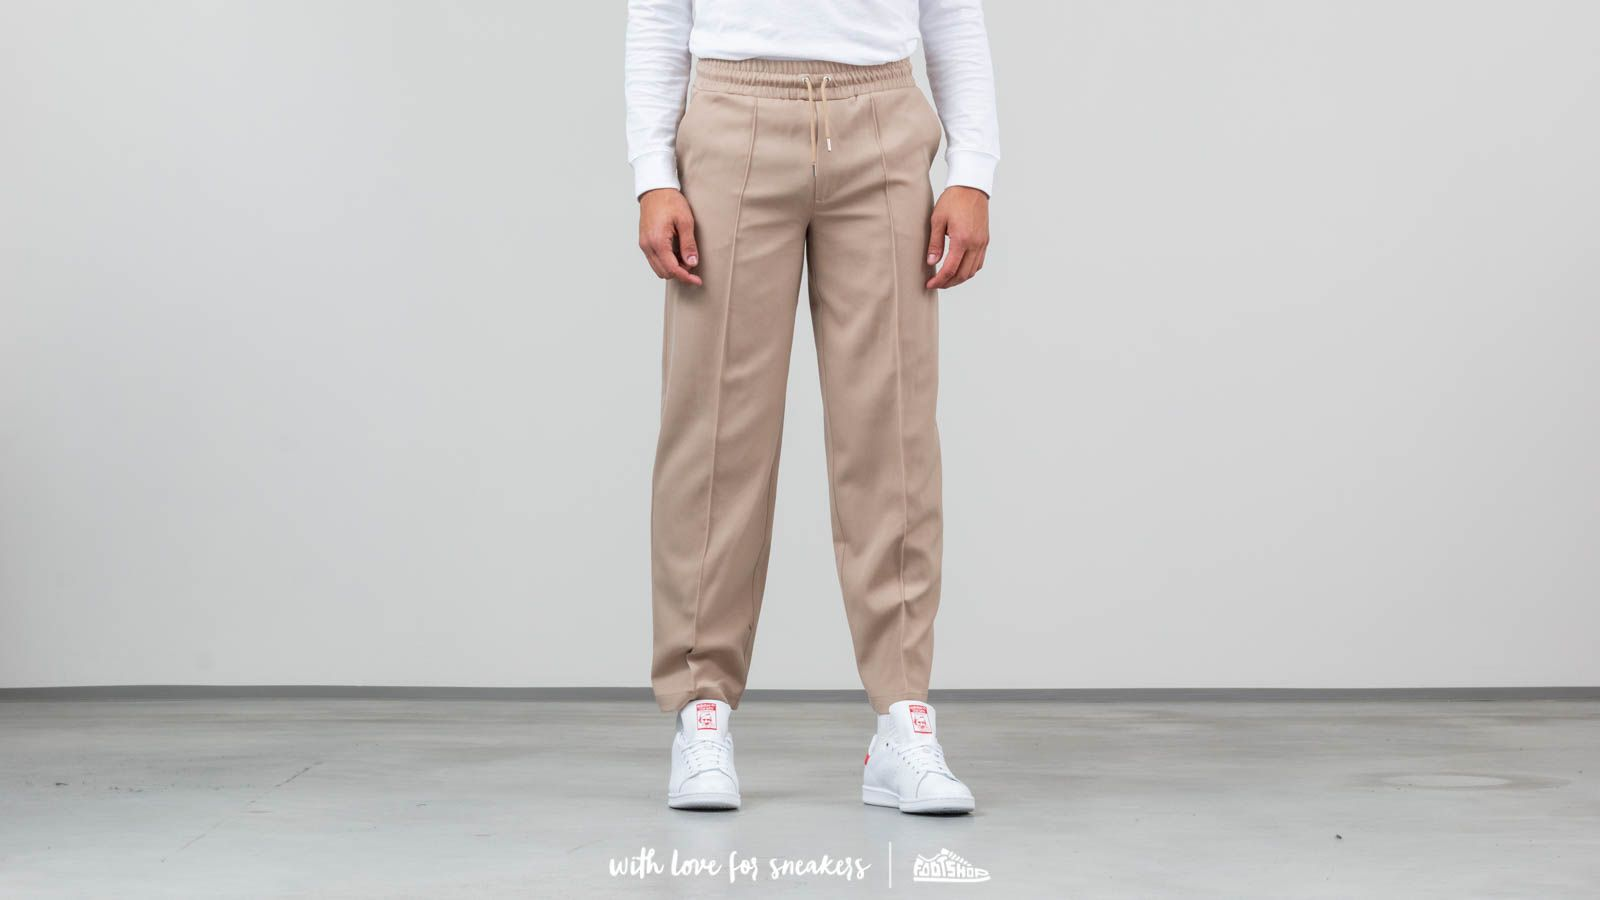 Džínsy a nohavice AXEL ARIGATO Shiro Trousers Beige